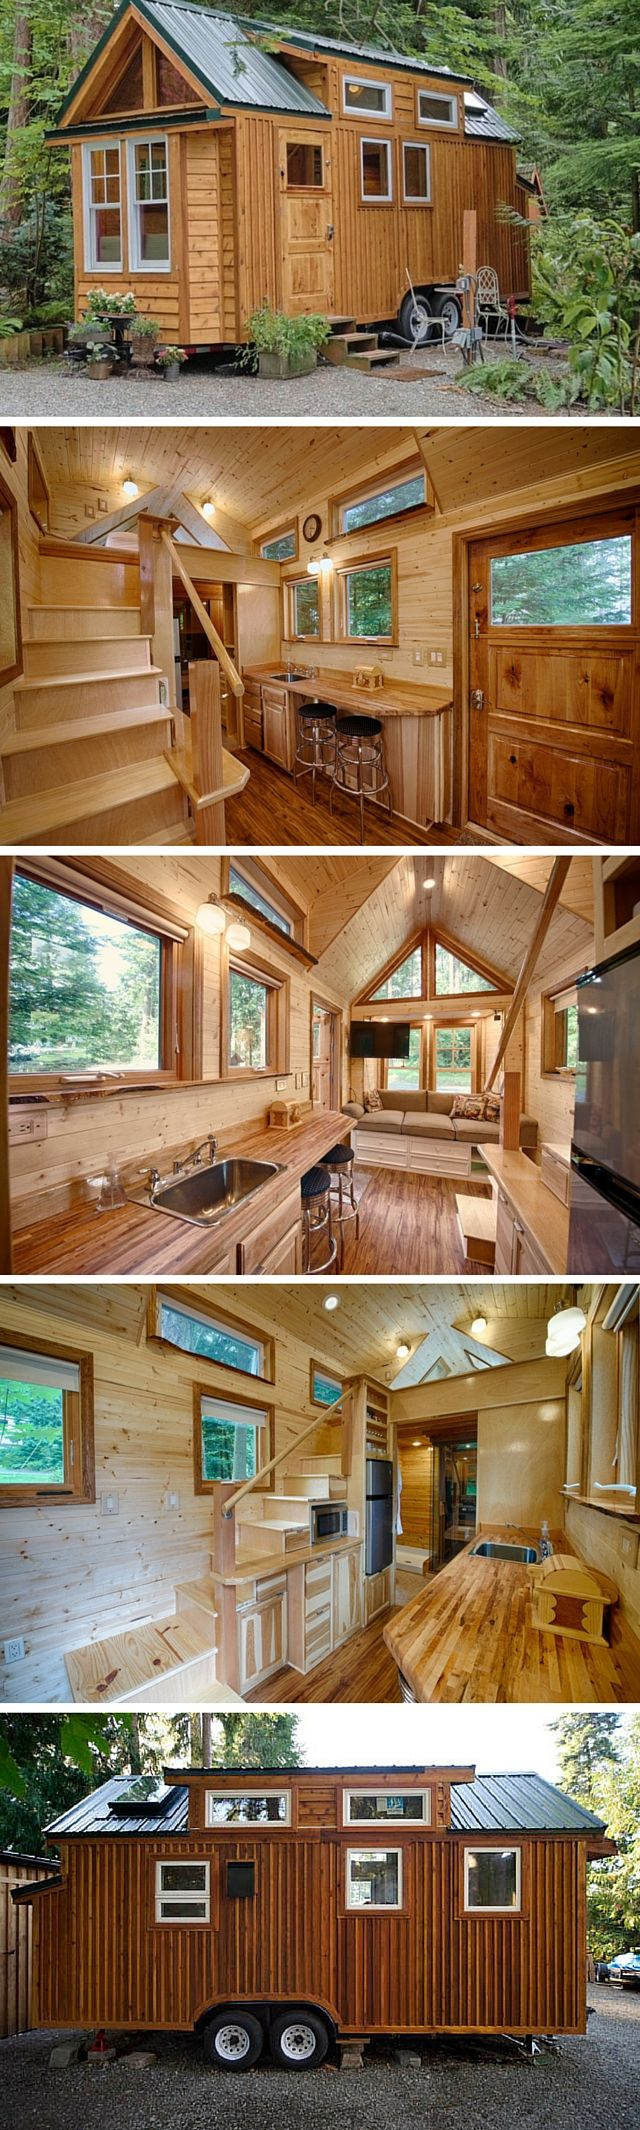 Best 20+ Tiny mobile house ideas on Pinterest